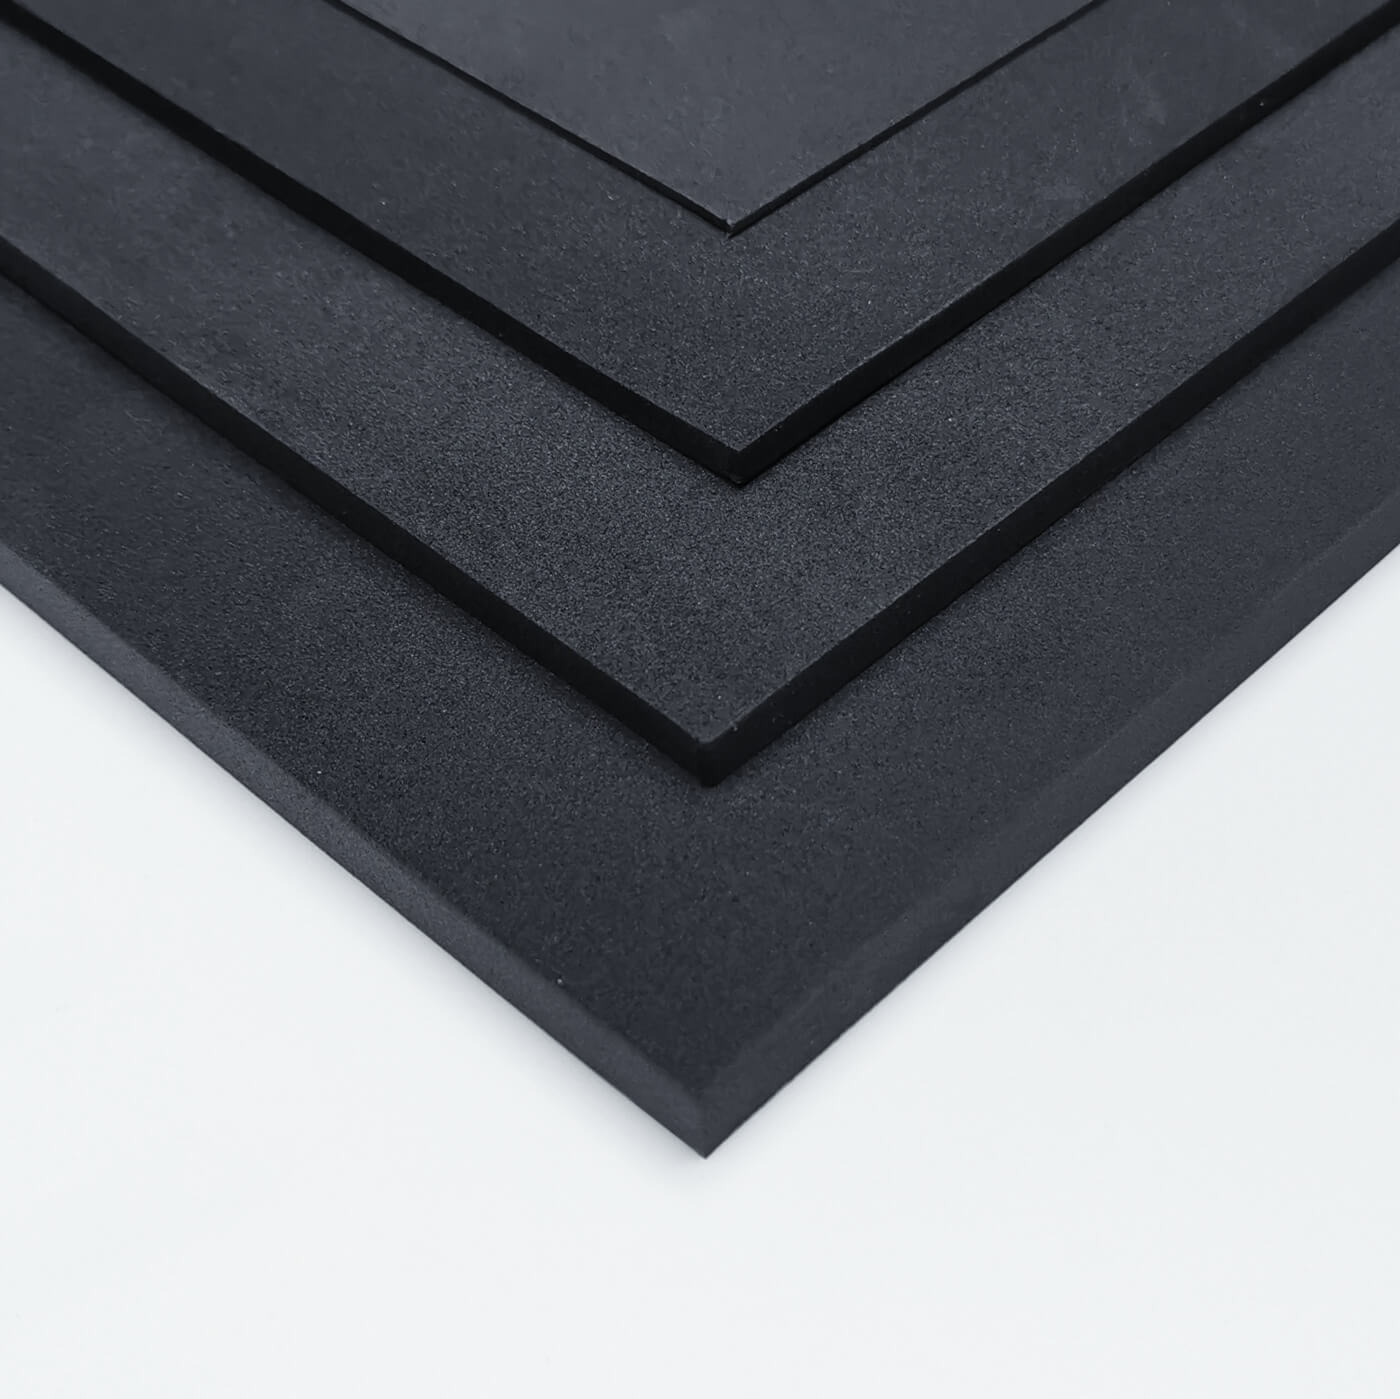 EVA Low Density Foam product image